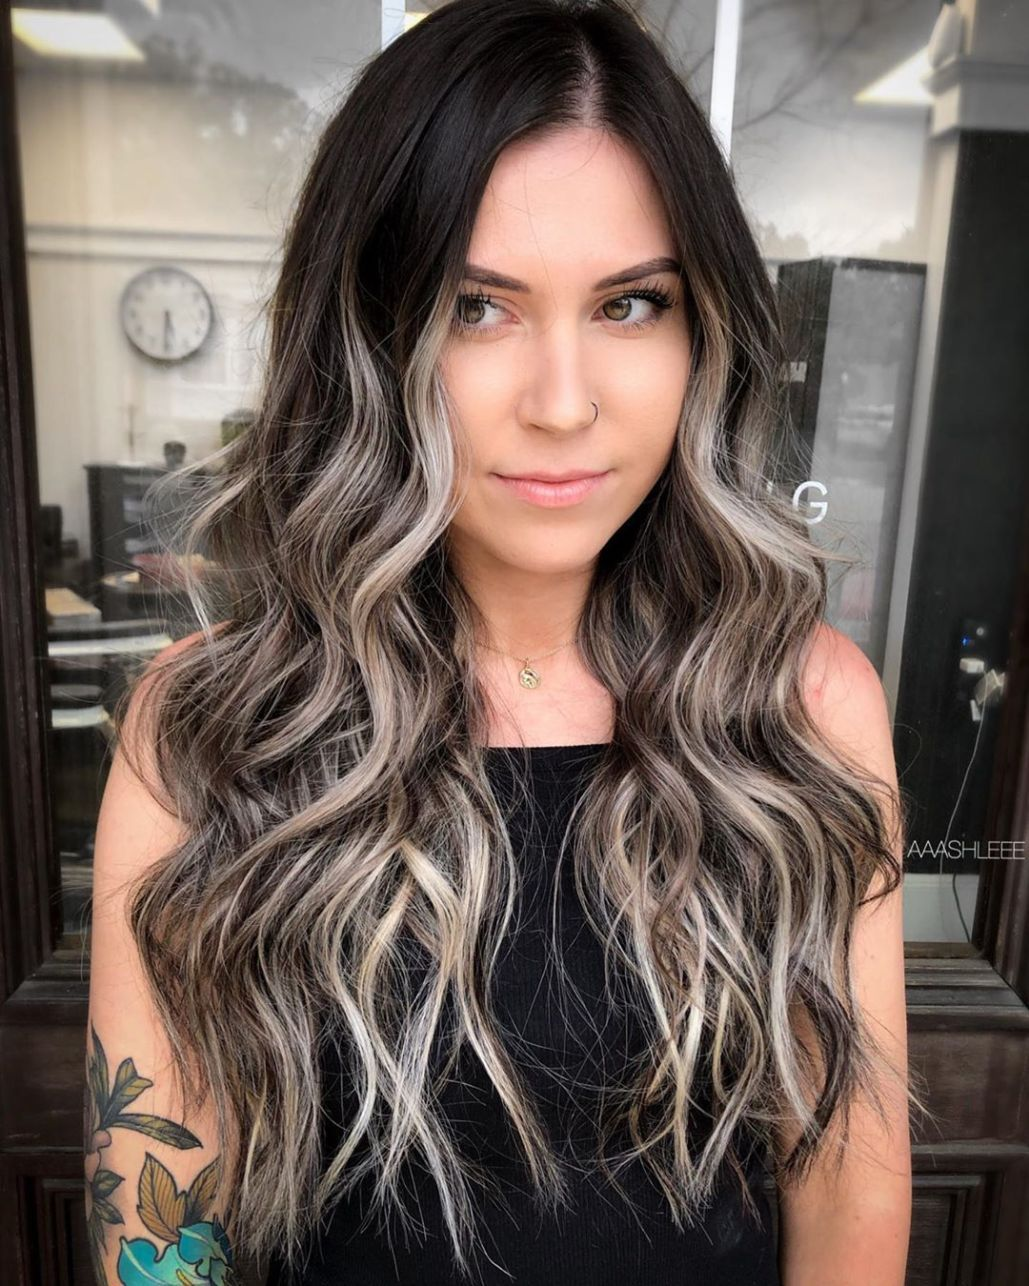 50 Best Blonde Highlights Ideas For A Chic Makeover In 2020 Hair Adviser In 2020 Black Hair With Blonde Highlights Blonde Highlights Brown Blonde Hair